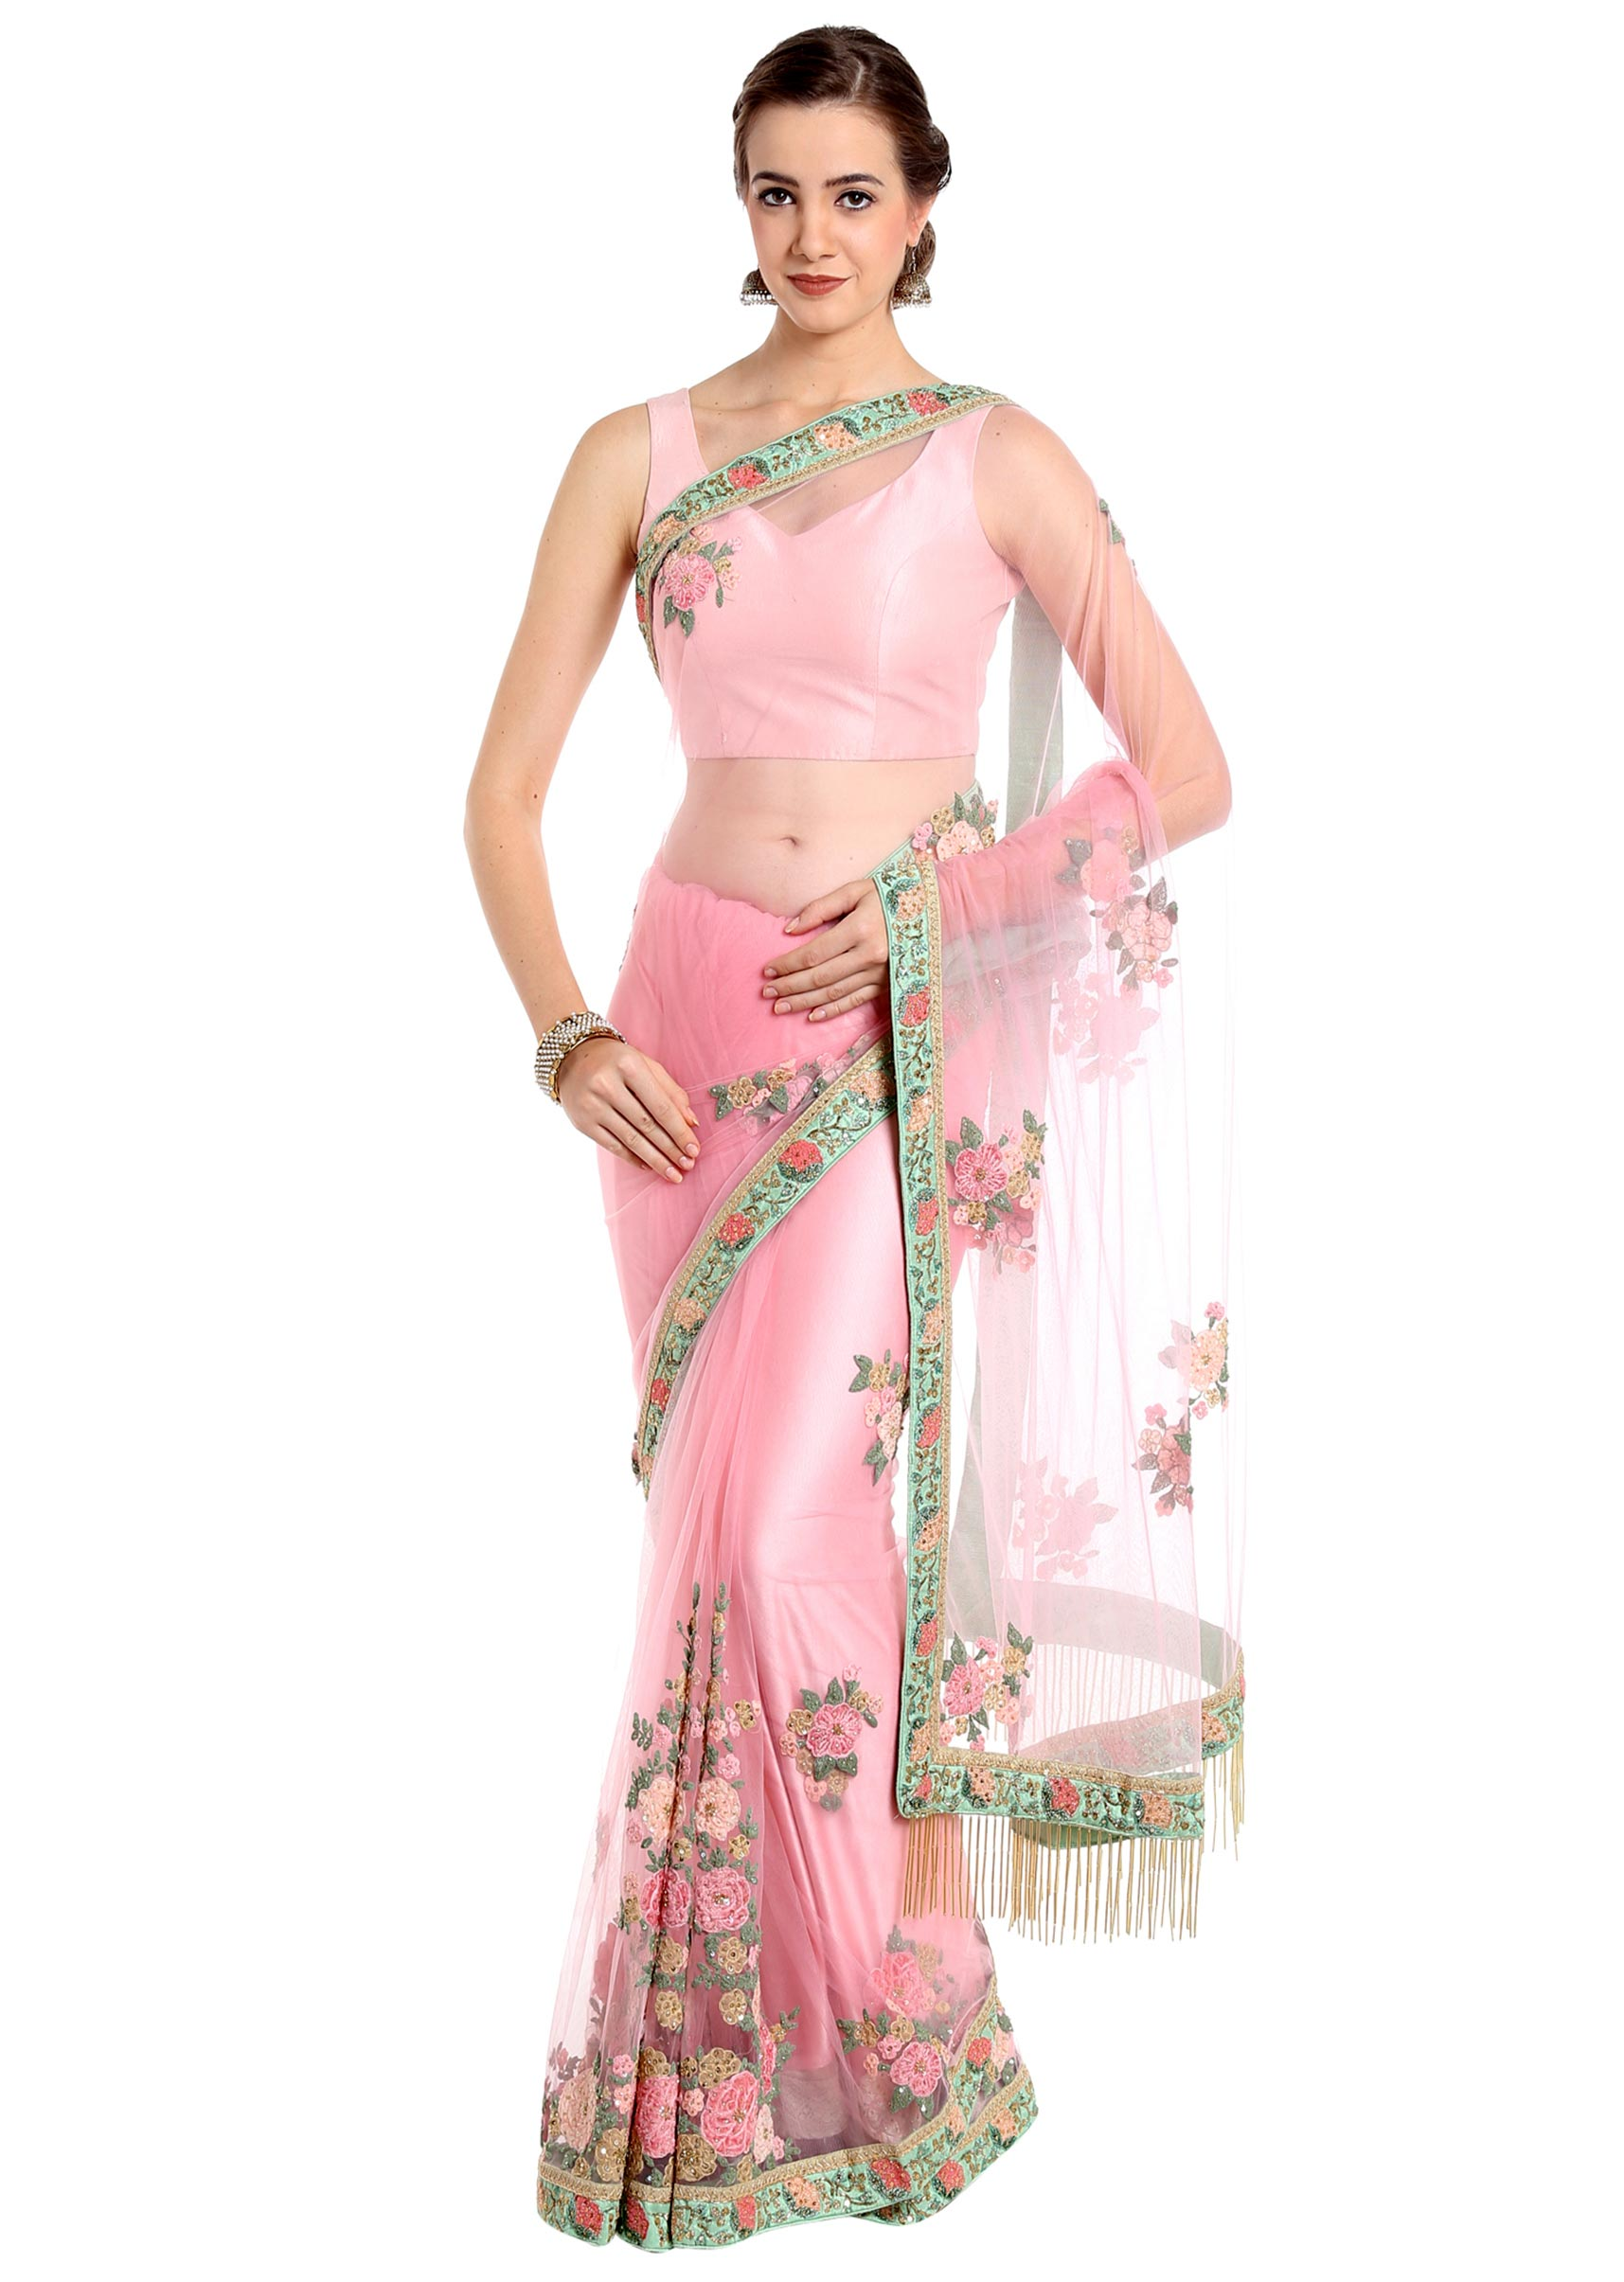 21e97fe304a63 Powder pink saree in flower patch work embroidery only on KalkiMore Detail